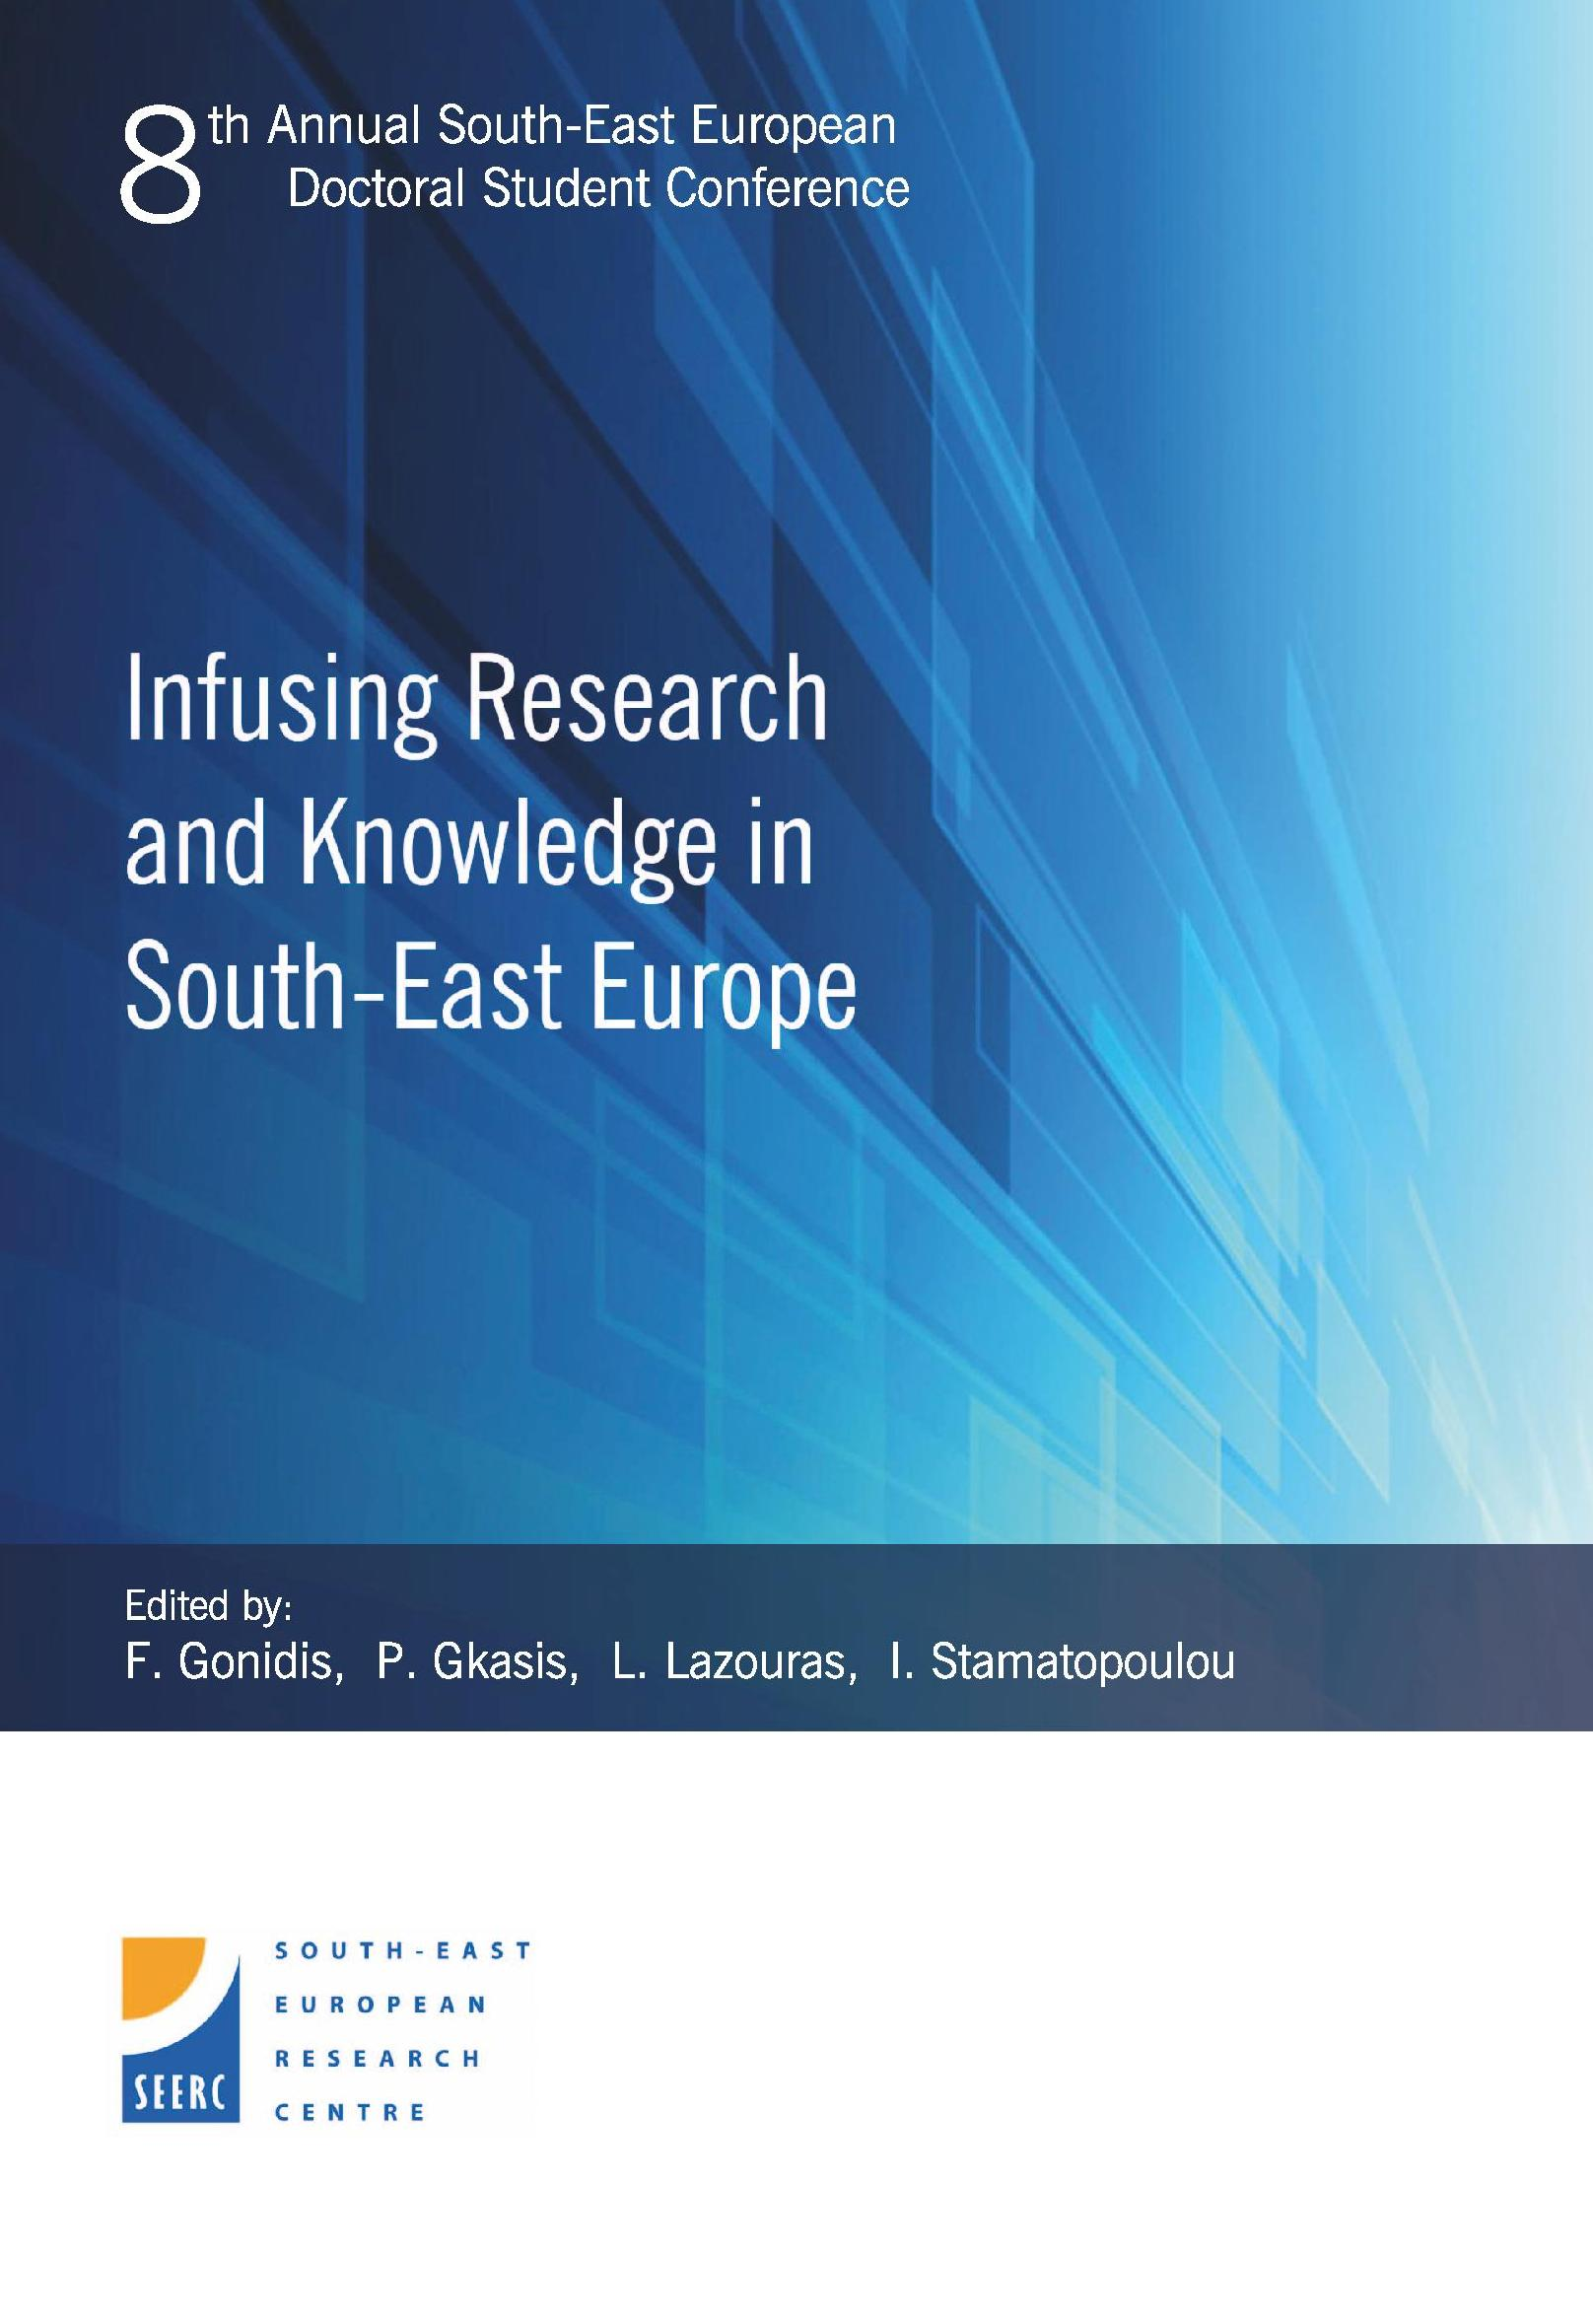 Proceedings of the 8th Annual South-East European Doctoral Student Conference: Infusing Research and Knowledge in South-East Europe